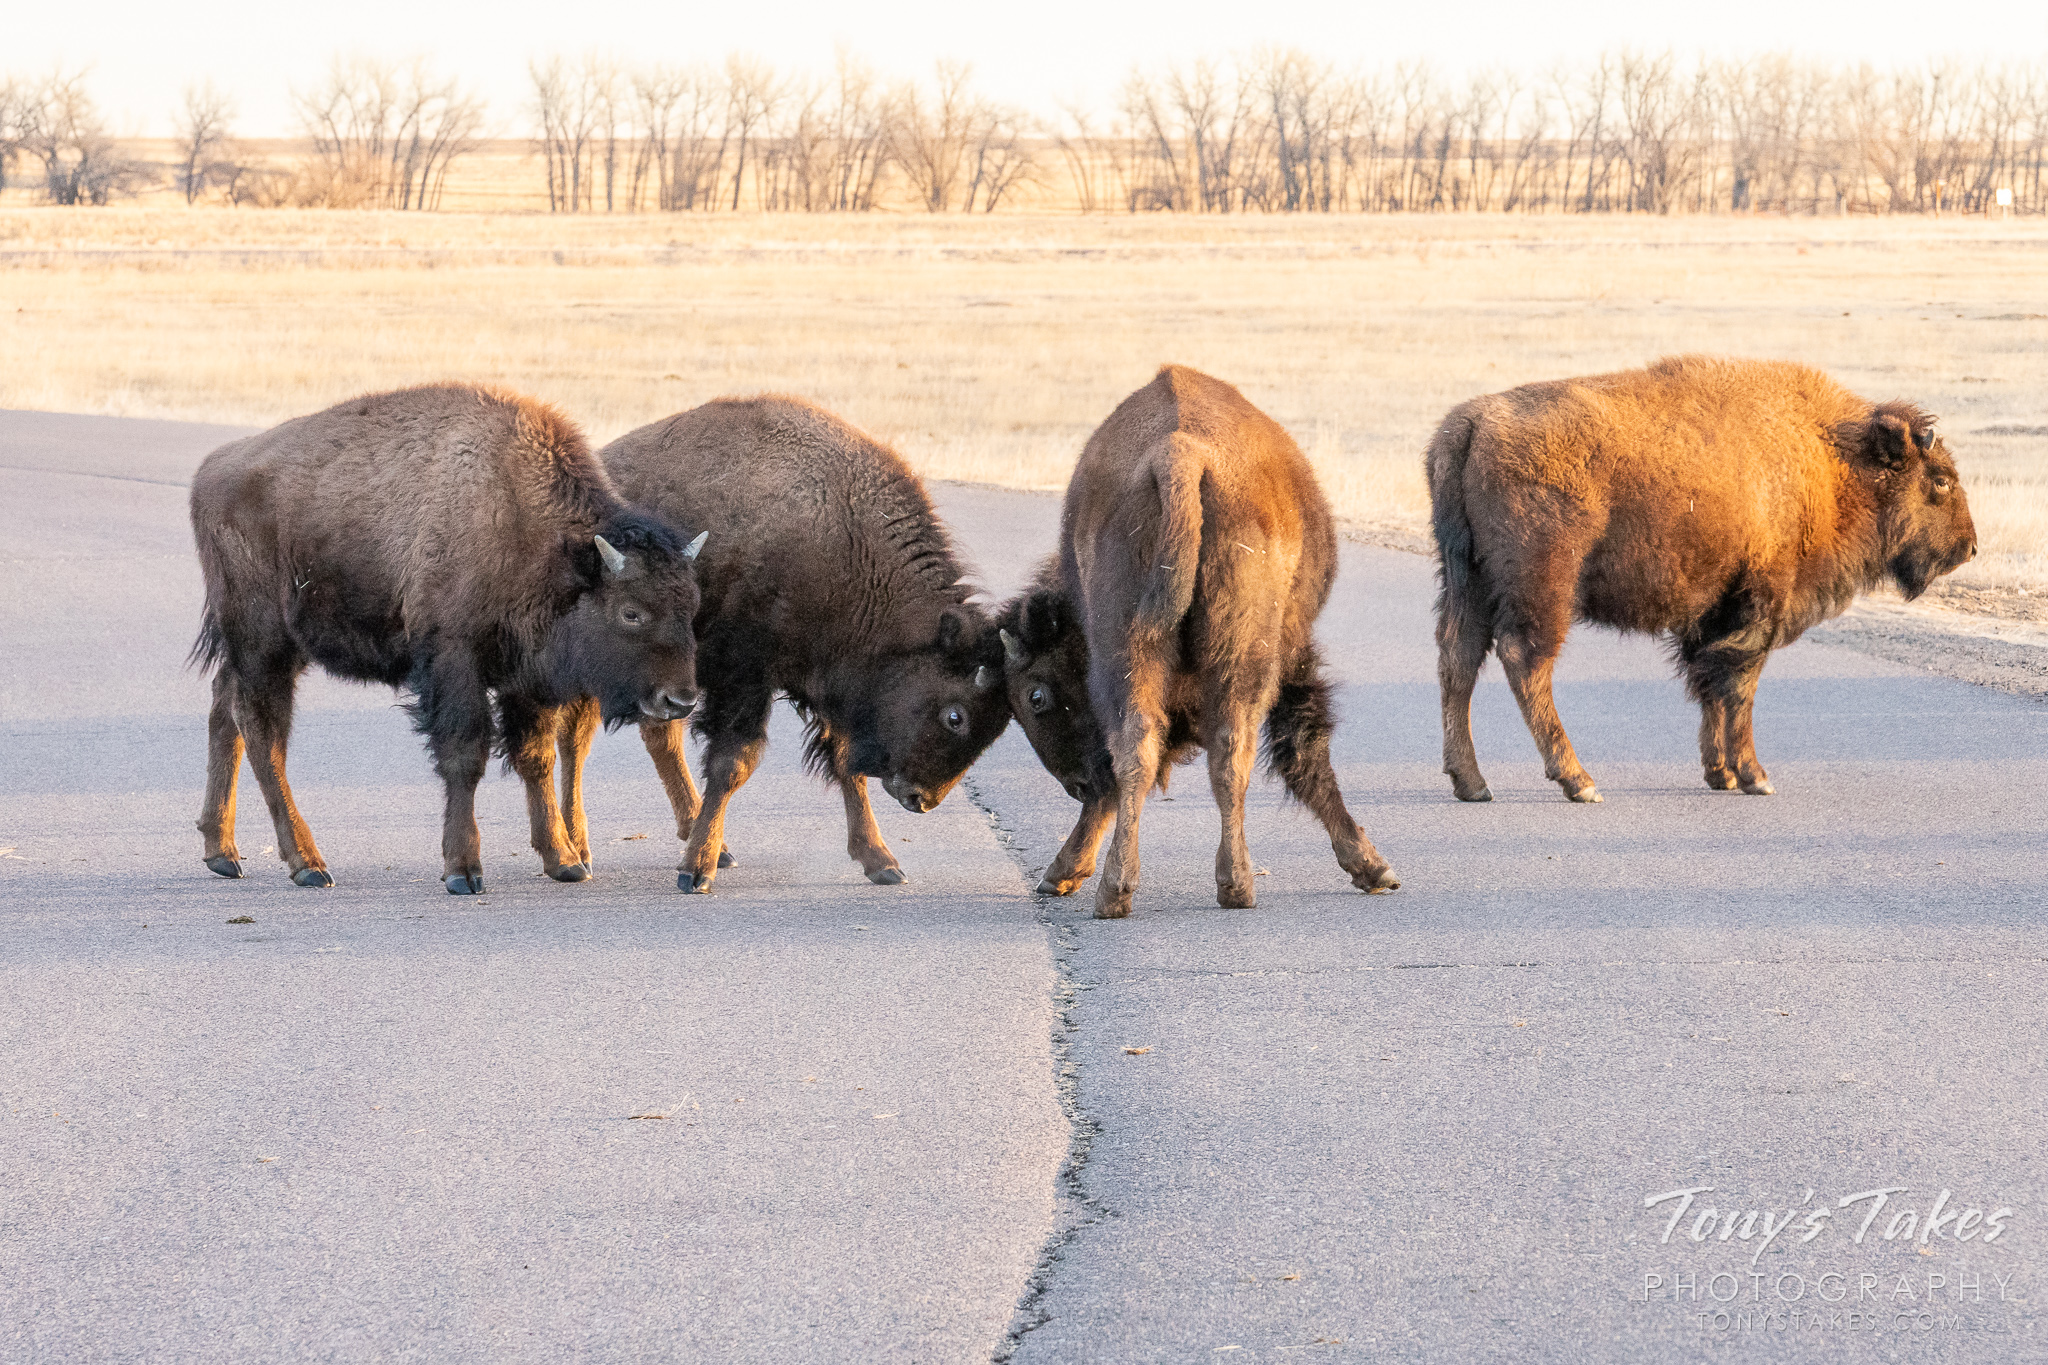 Bison calves play in the street